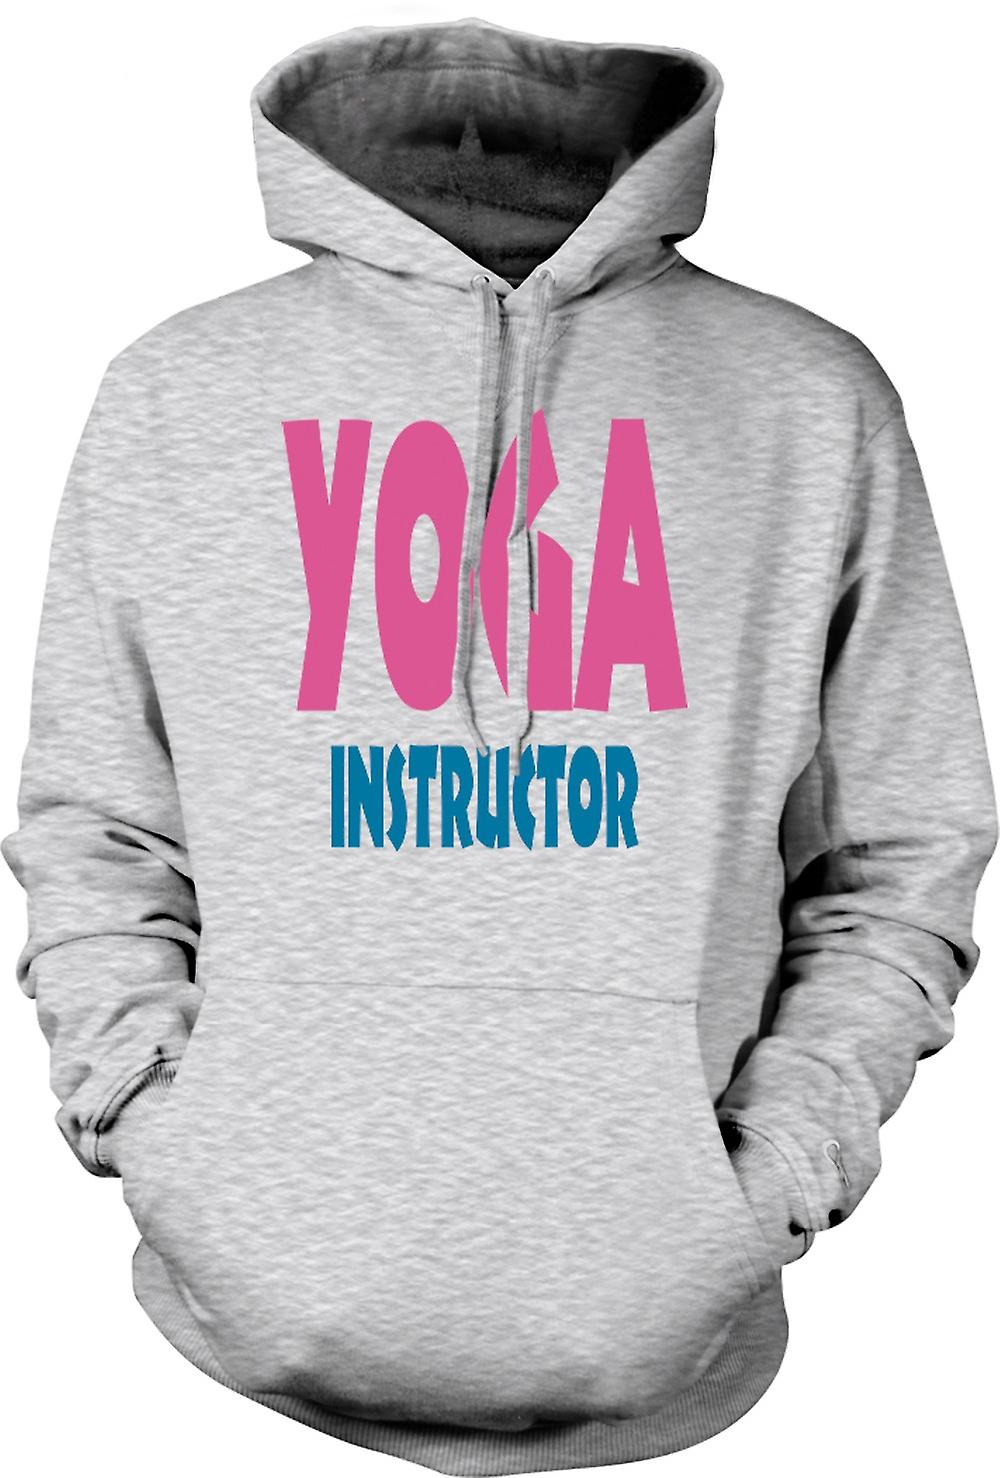 Mens Hoodie - Yoga instruktör Martial Art - Slogan